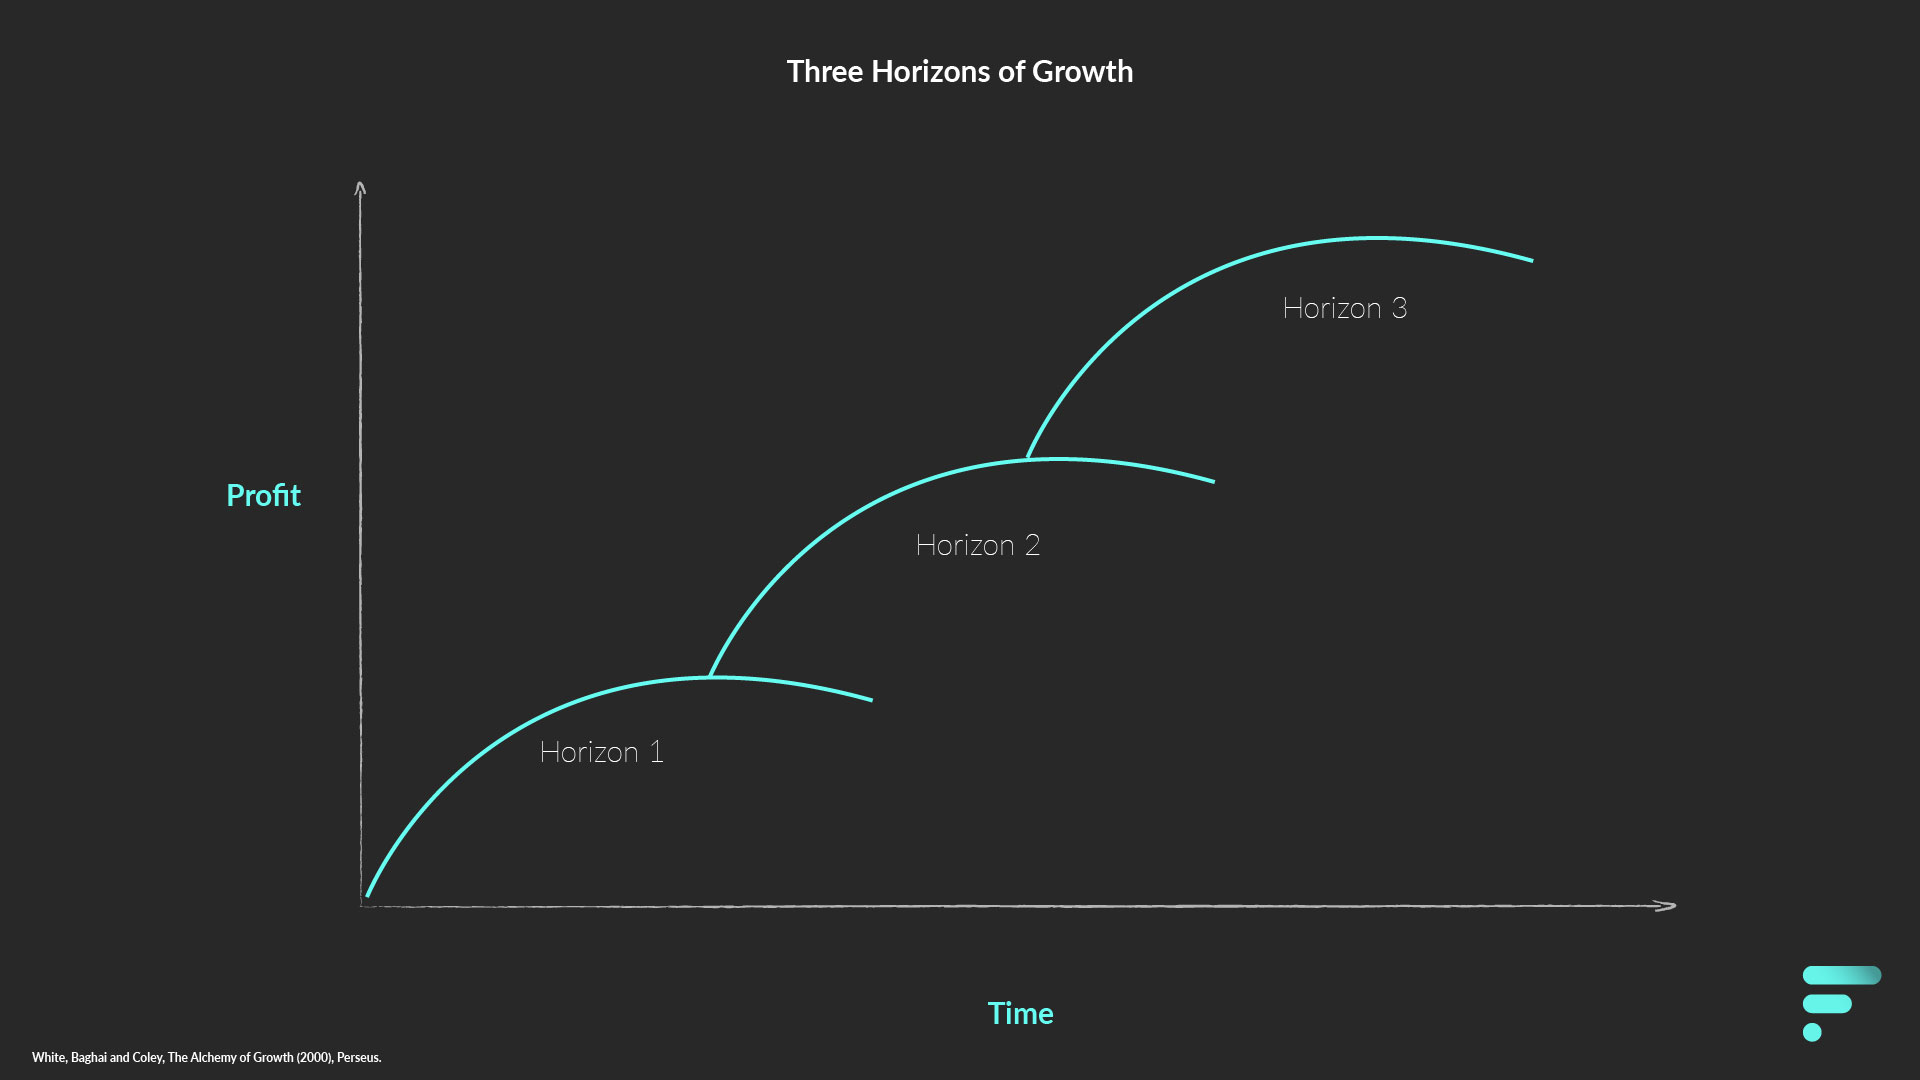 Three Horizons of Growth - Simple model